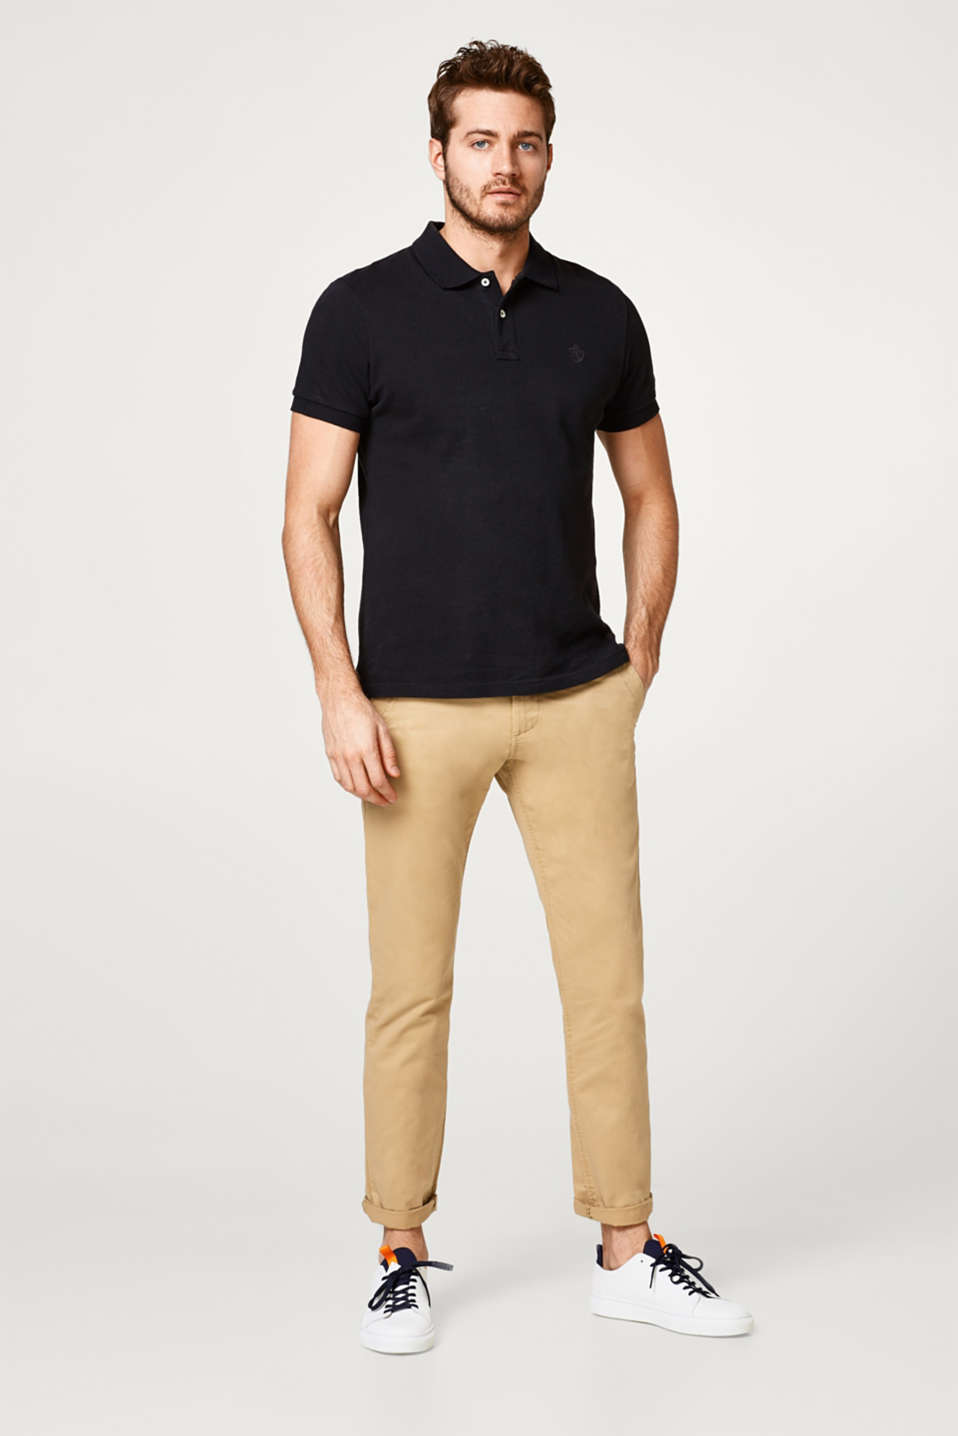 100% cotton basic chinos